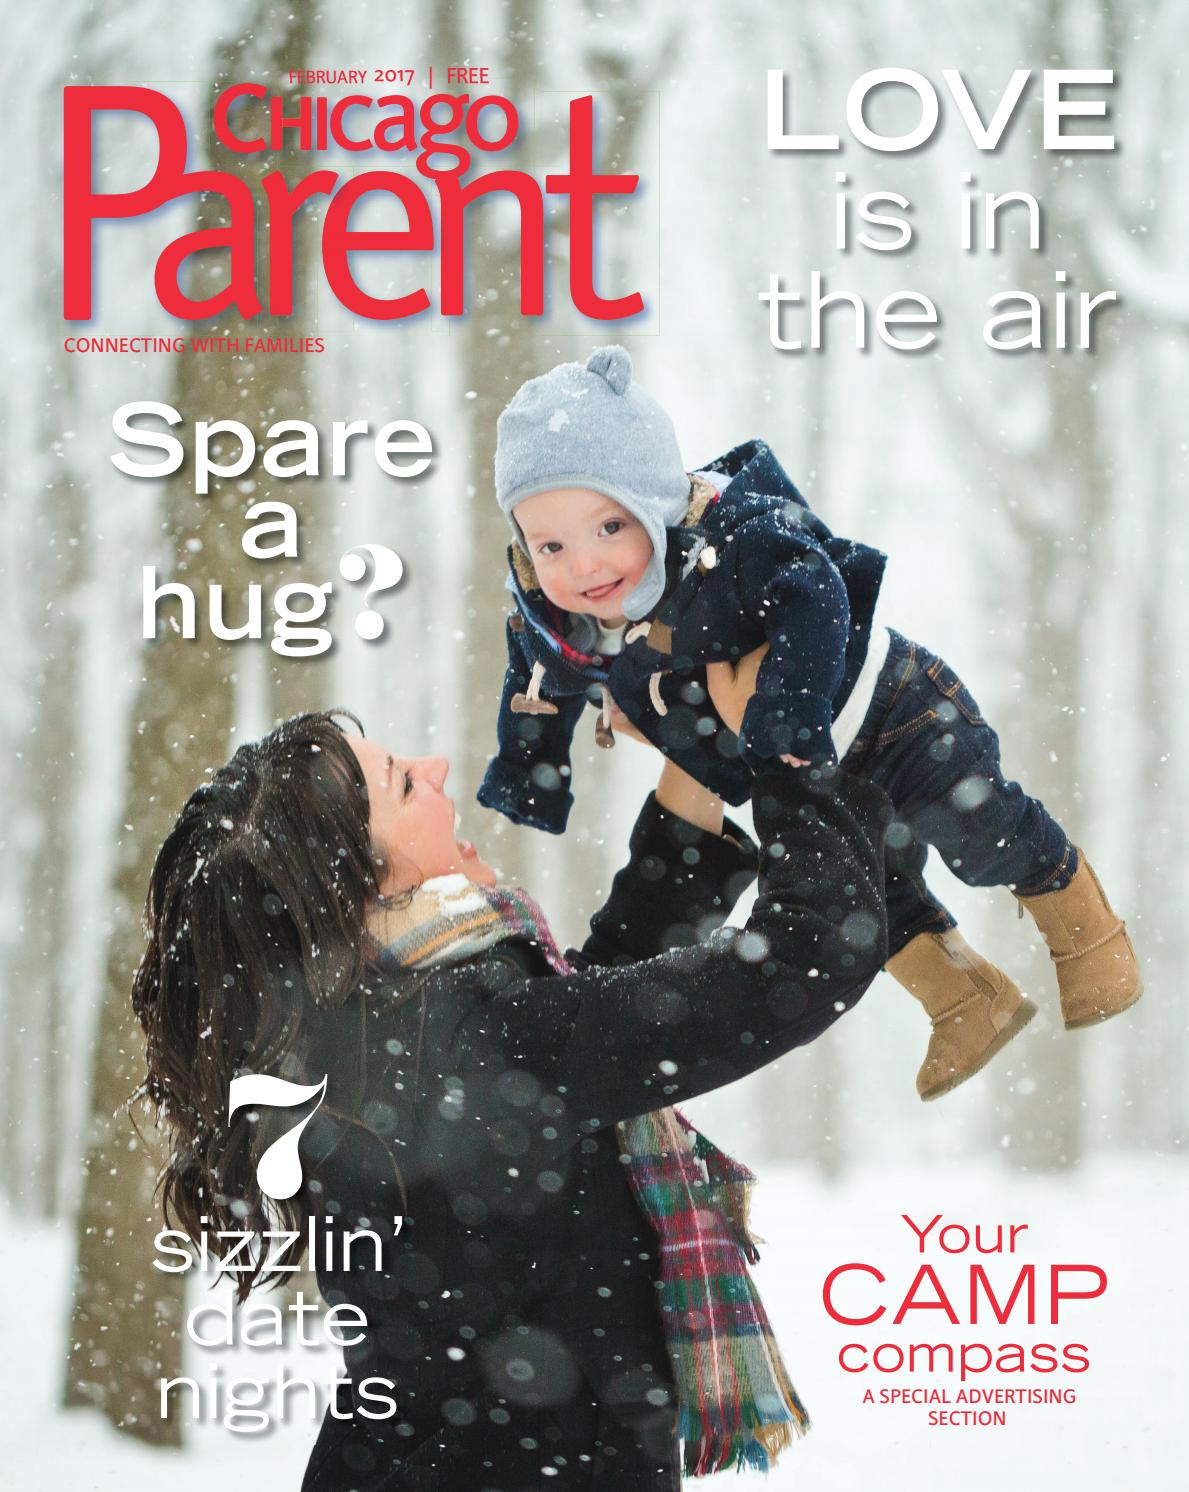 Chicago Parent February 2017 by Chicago Parent - issuu